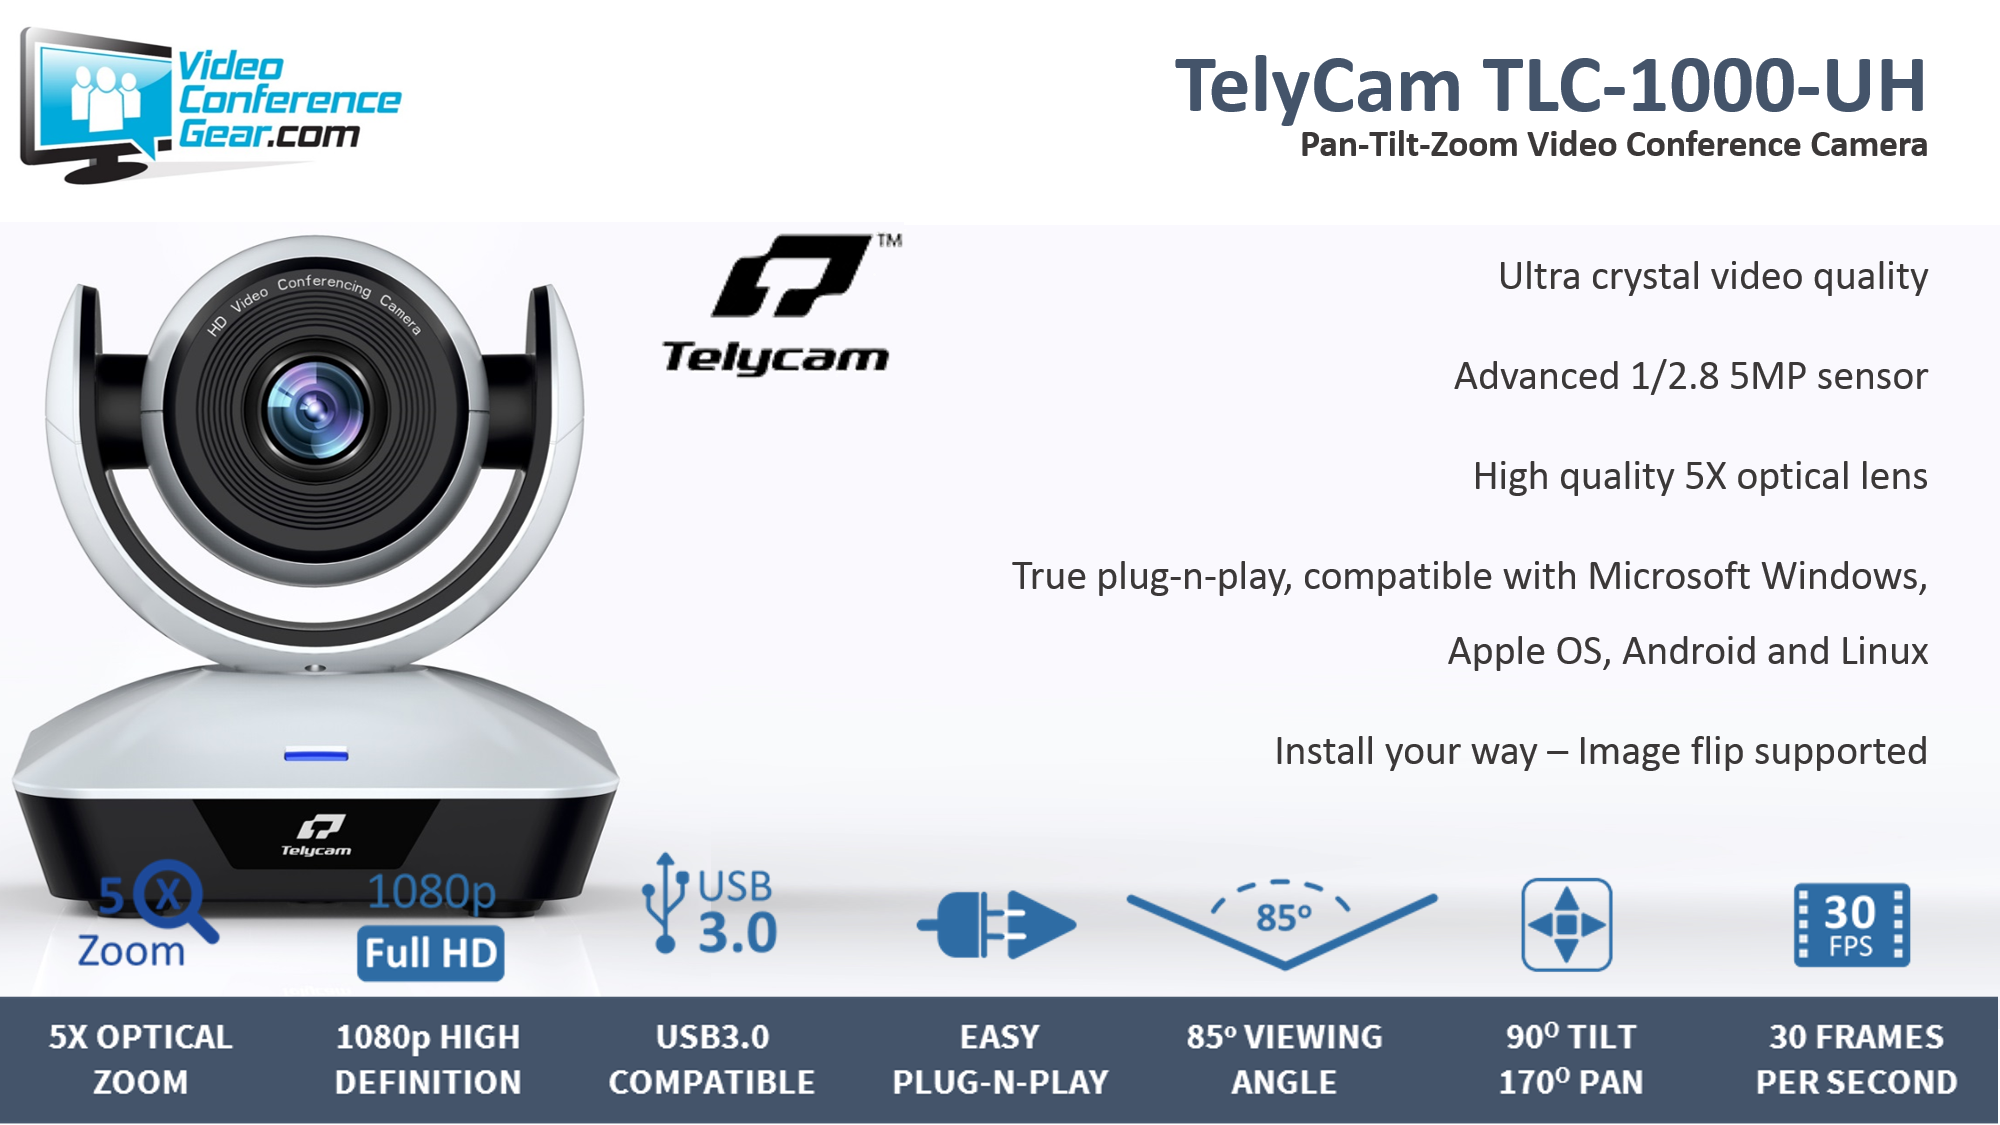 TelyCam TLC-1000-UH